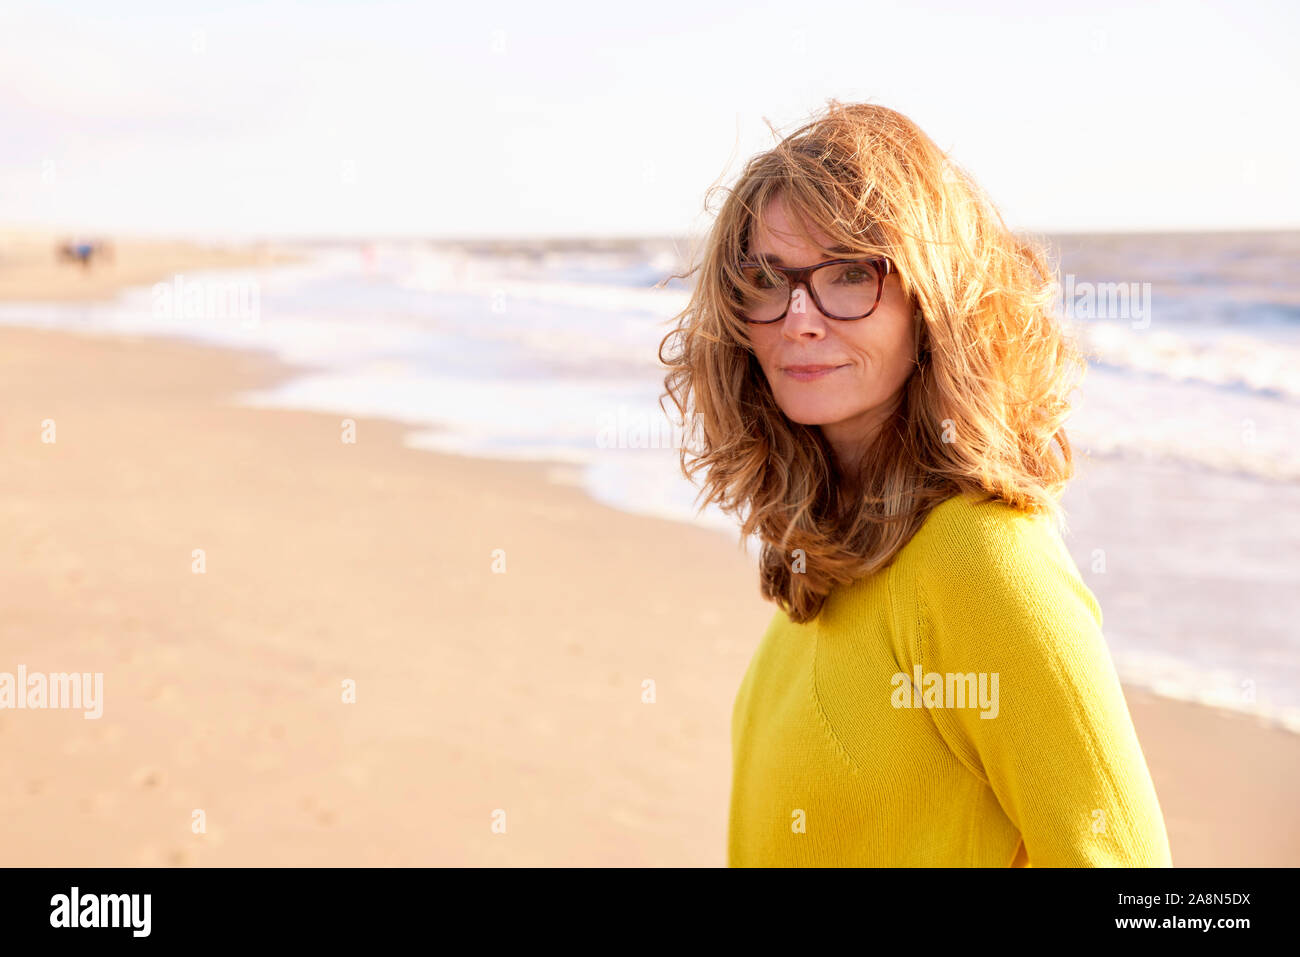 Close-up portrait of beautiful smiling mature woman with frizzy hair walking on the beach and enjoying sunrise. Stock Photo